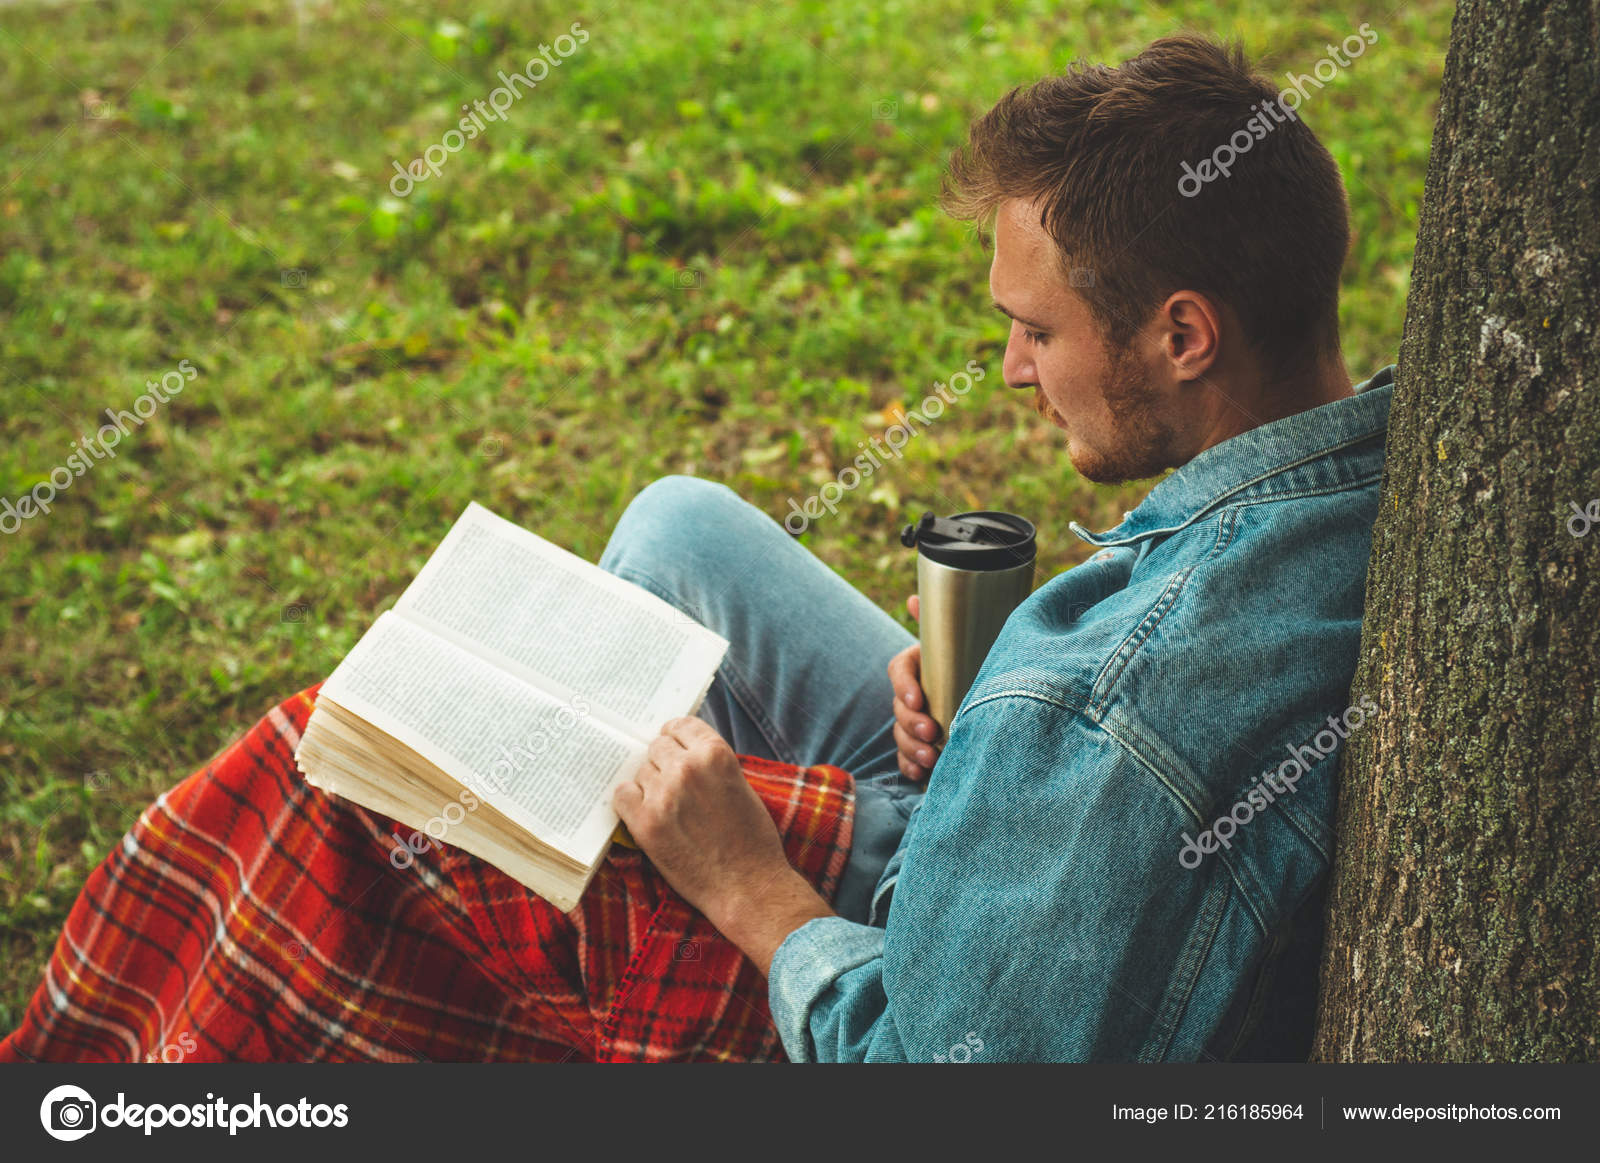 7ec009c1 Smiling Young Man reading book outdoor with a warm red plaid and a cup of  tea on background Autumn vacations and Lifestyle concept.